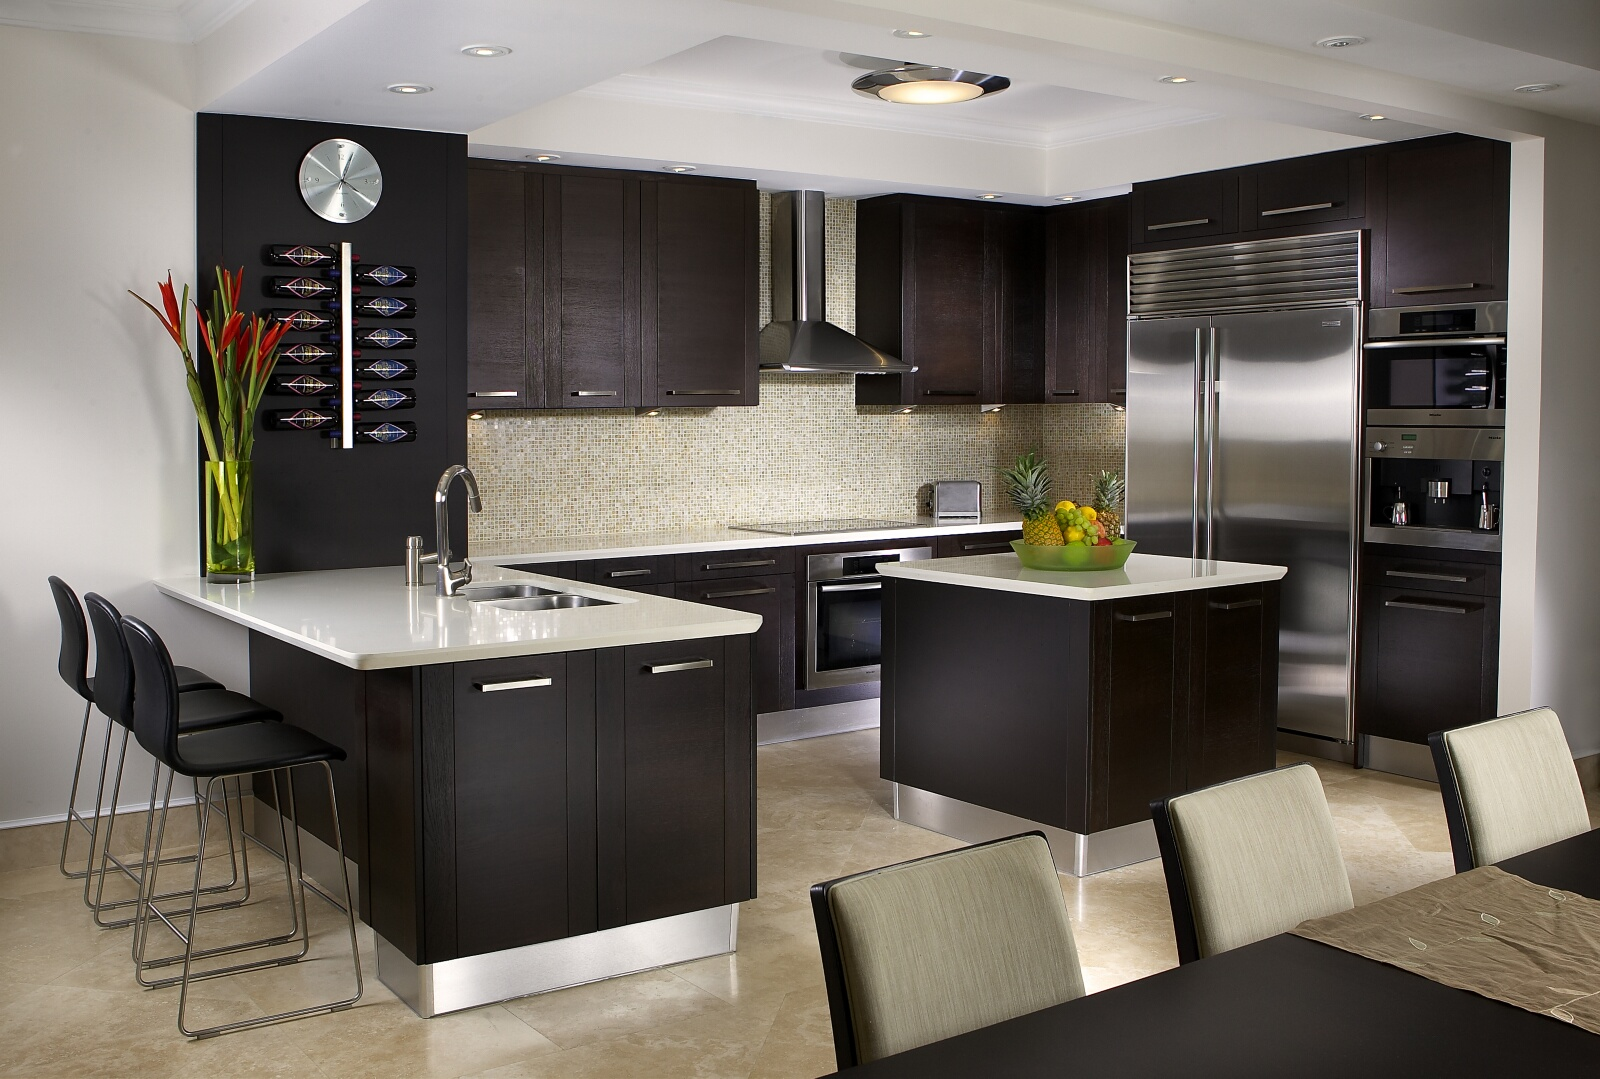 Kitchen interior design services miami florida for Kitchen interior decoration images